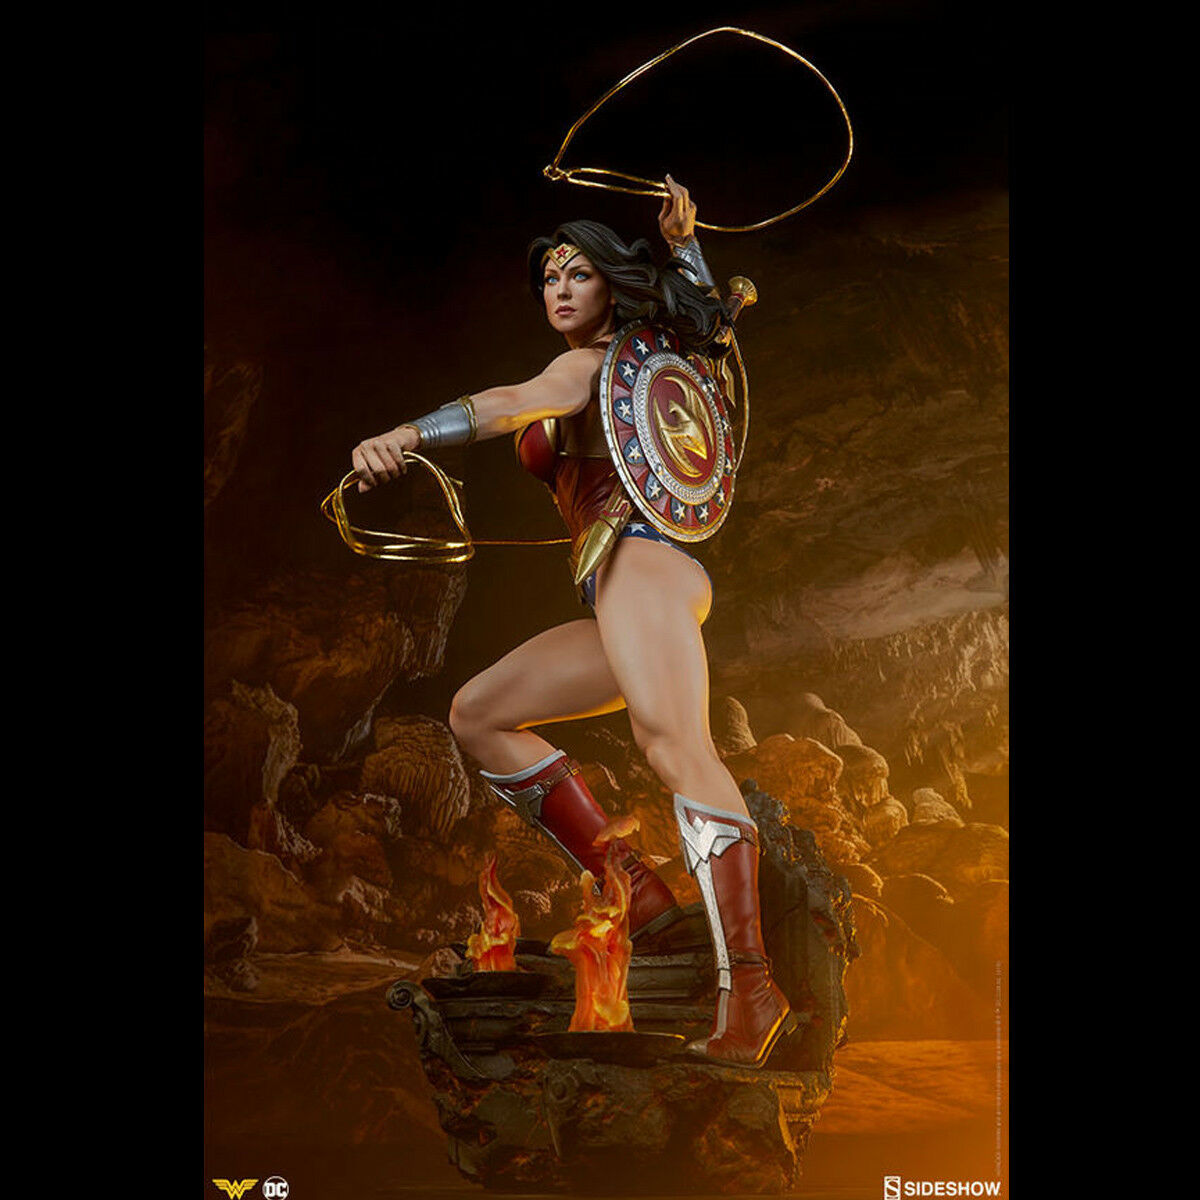 SIDESHOW 300664 1 4 Scale Wonder Woman Figure DC Comics Statue Collectible New